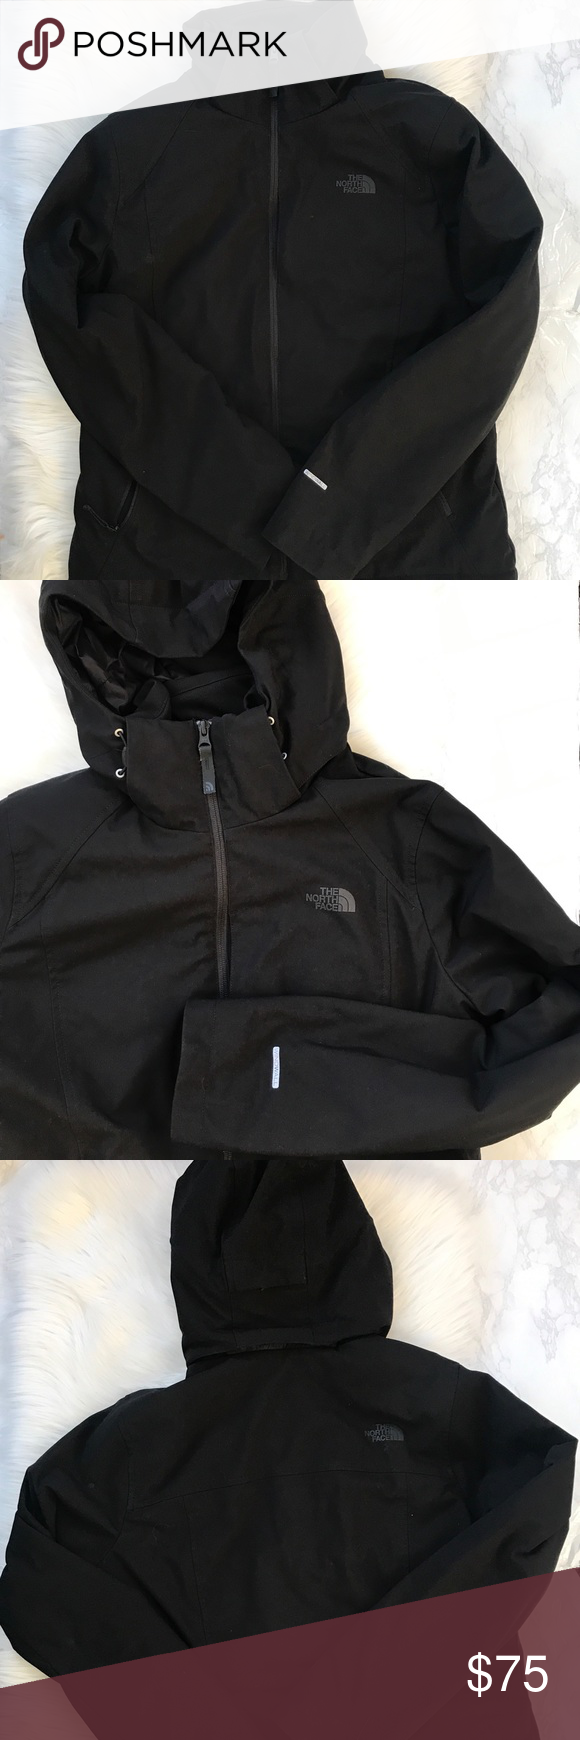 The North Face Primaloft Windwall Insulated Jacket Insulated Jackets Jackets The North Face [ 1740 x 580 Pixel ]